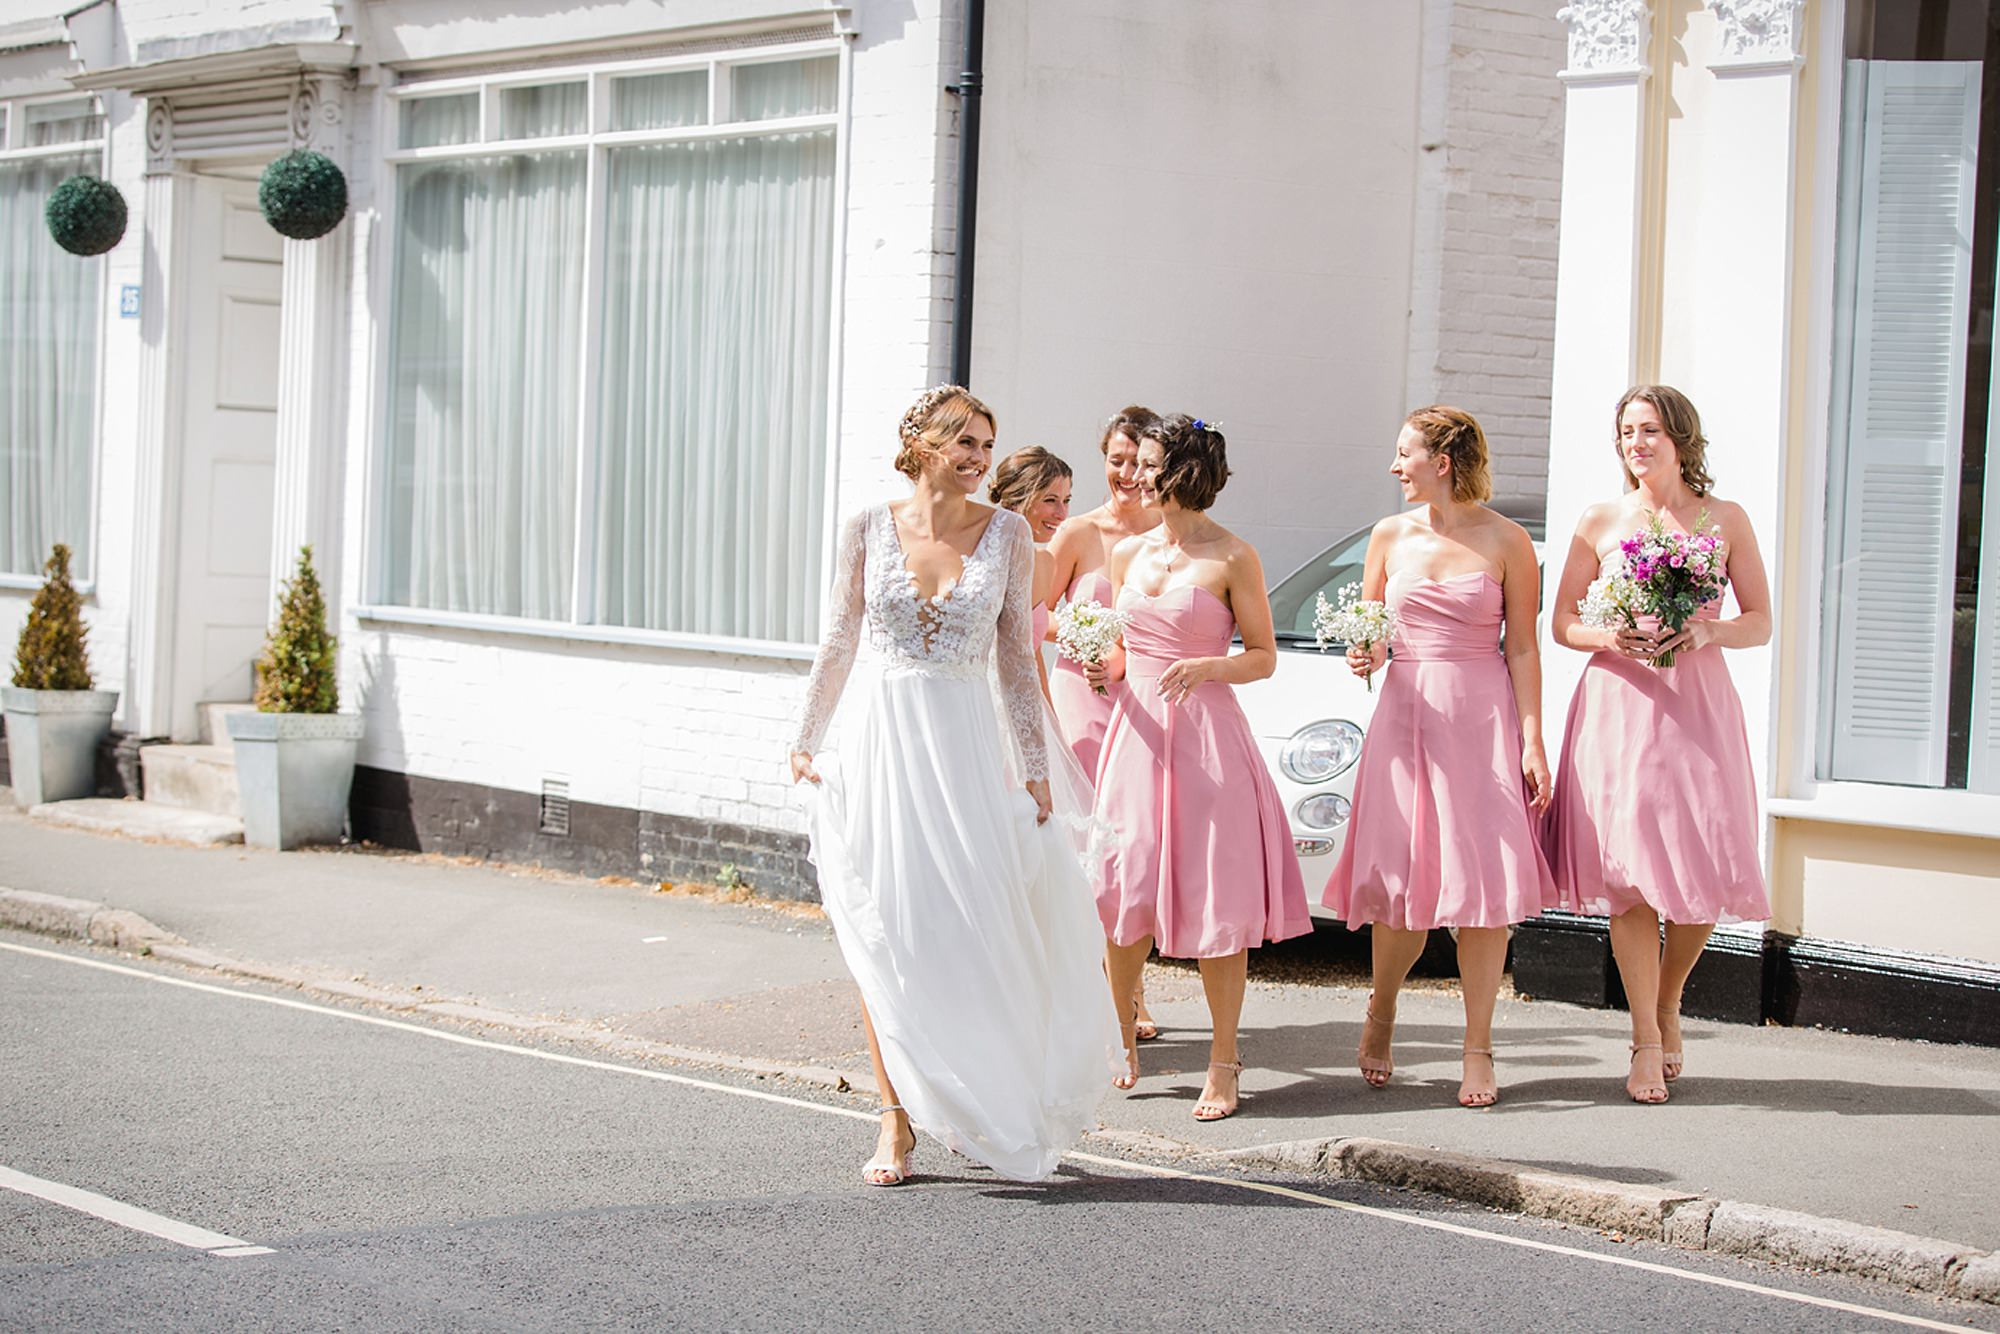 Marks Hall Estate wedding photography bridal party crossing the road